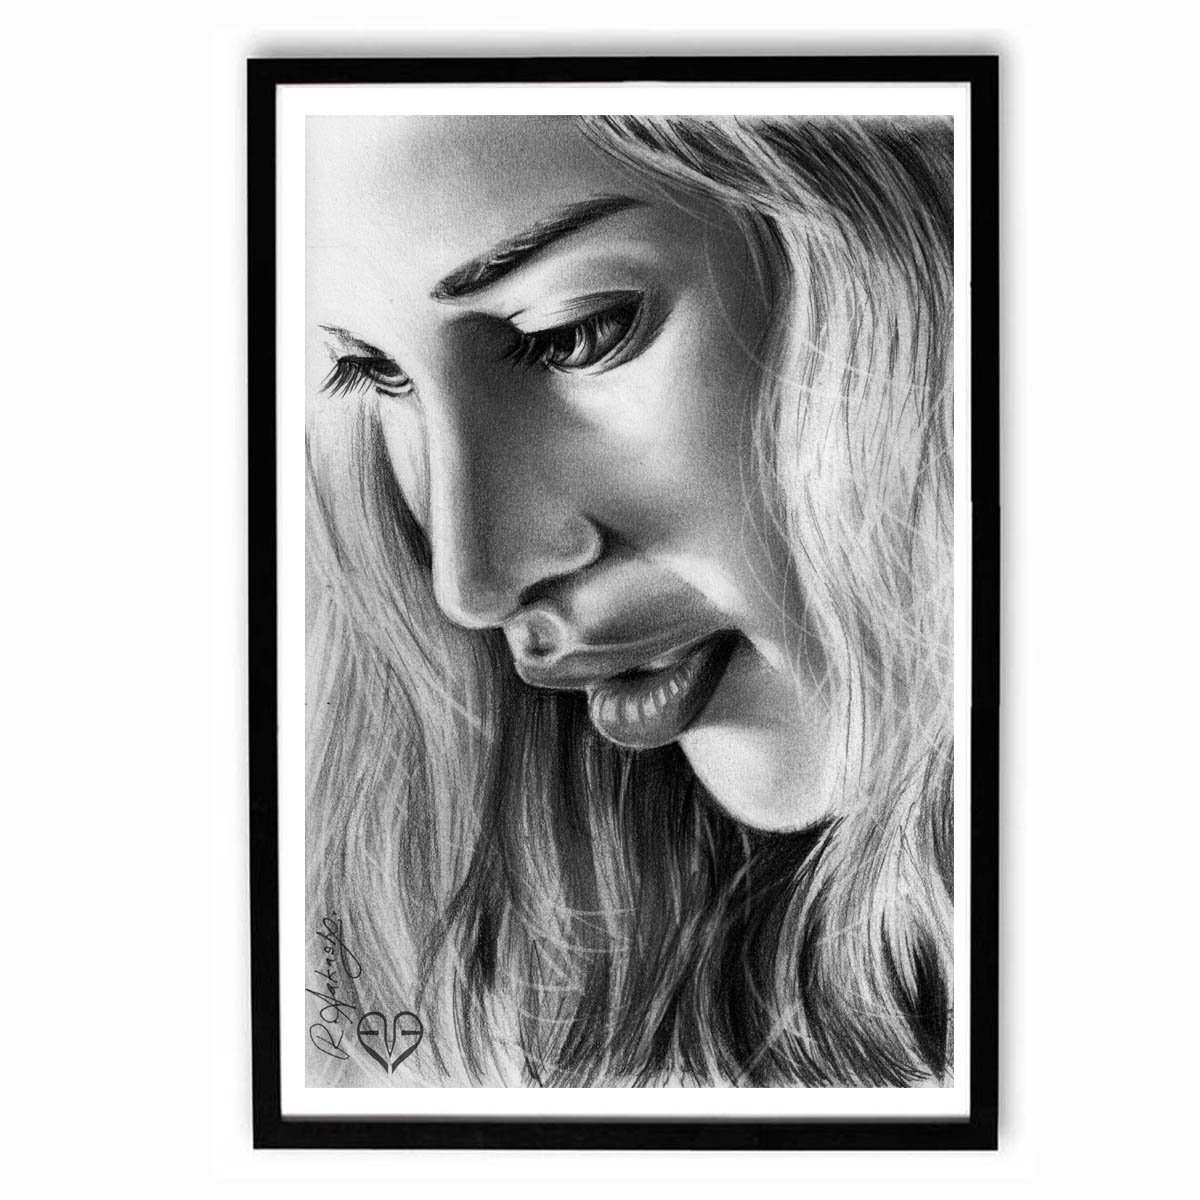 Speaking Walls Daenerys Targaryen Sketch Work Poster Unframed 12x18 Inches Amazon In Home Kitchen